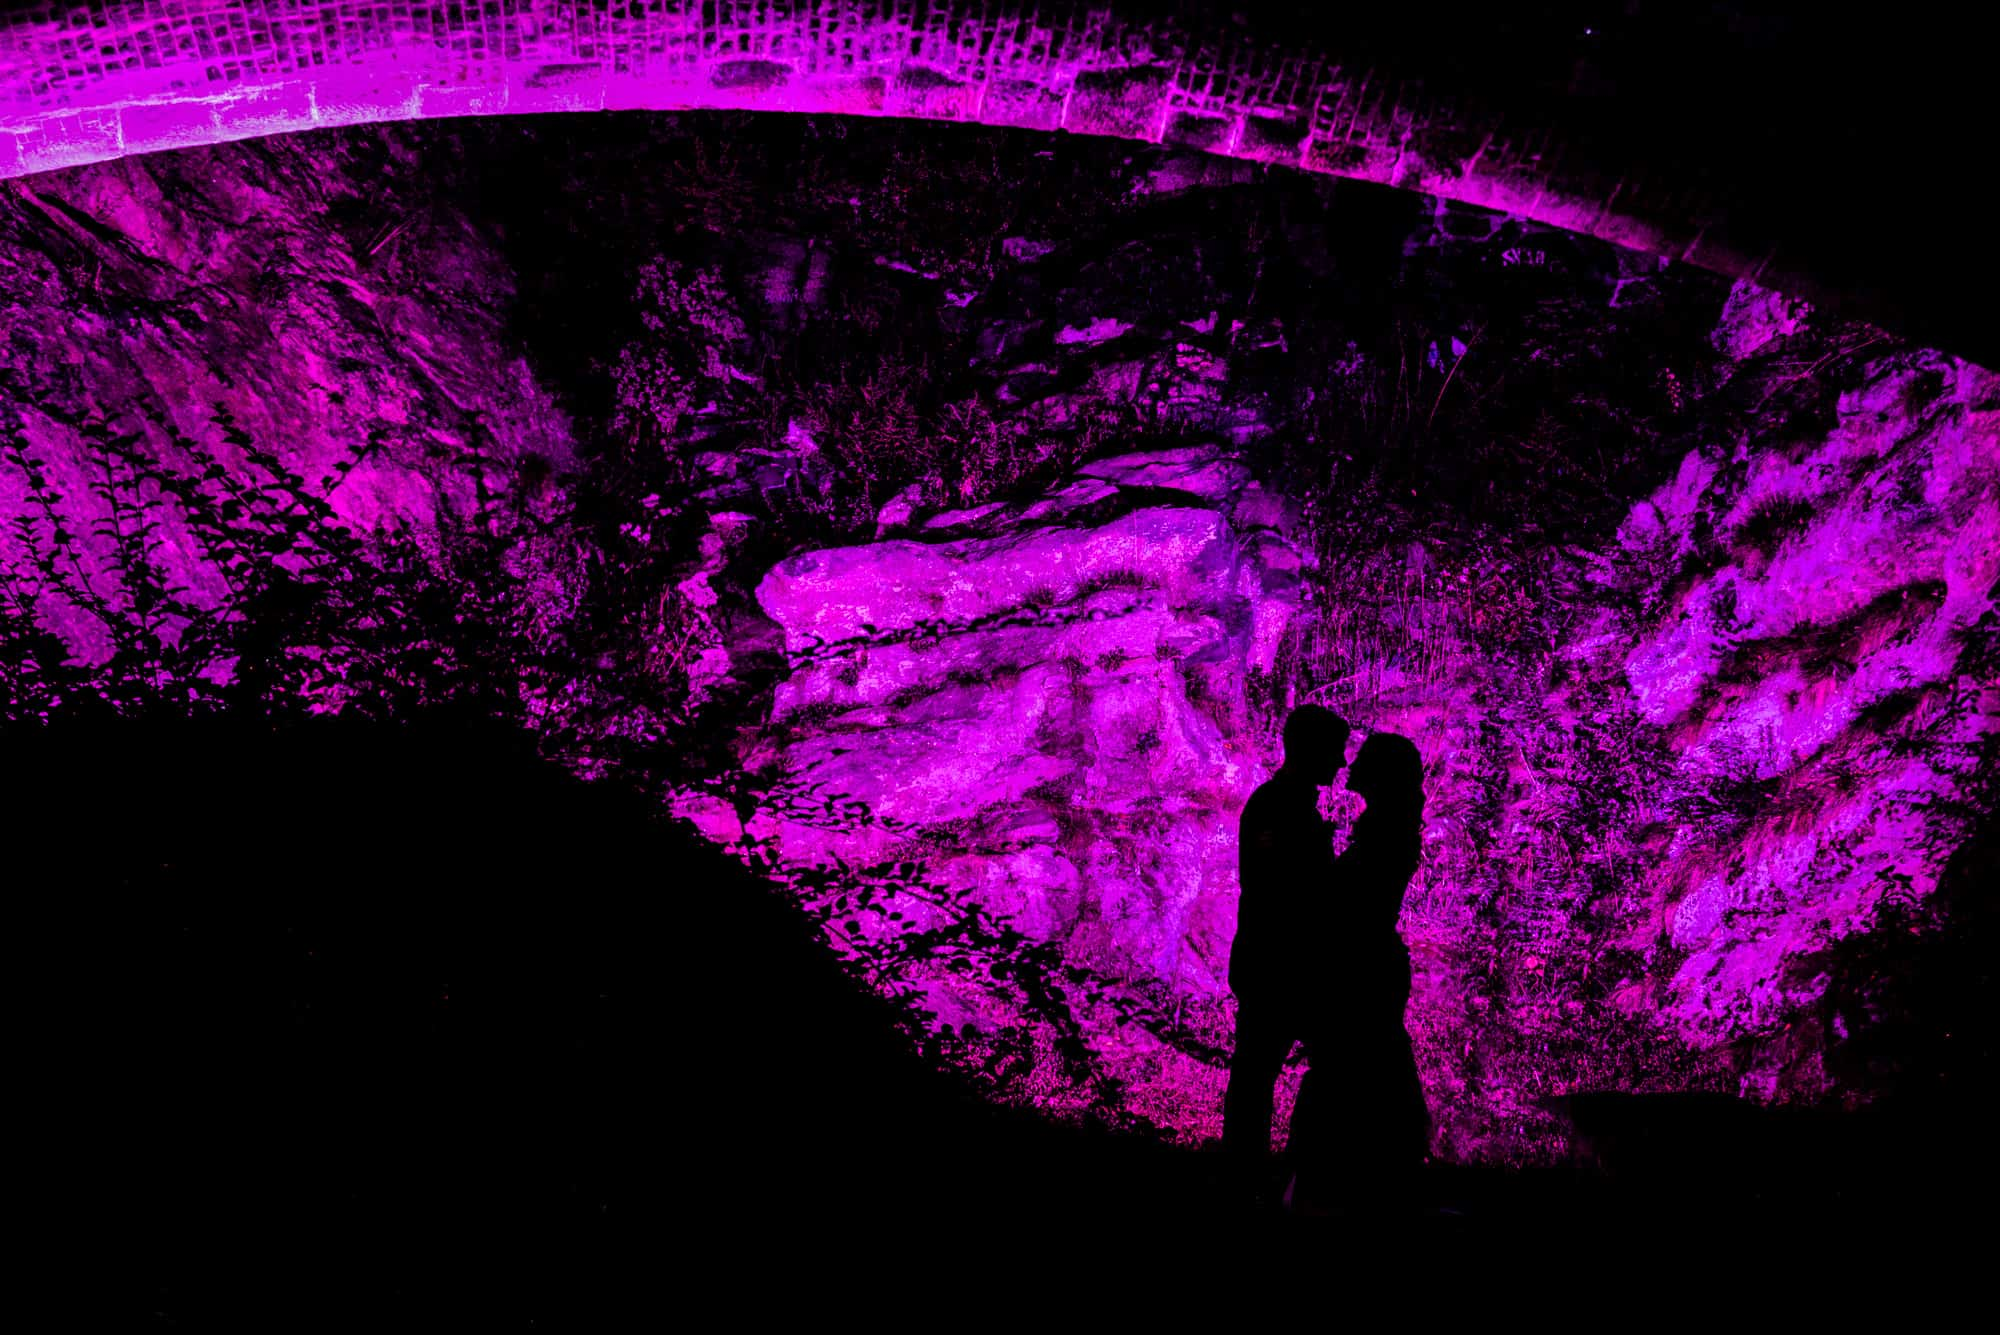 Silhouette of couple against purple background at Water Works Philadelphia